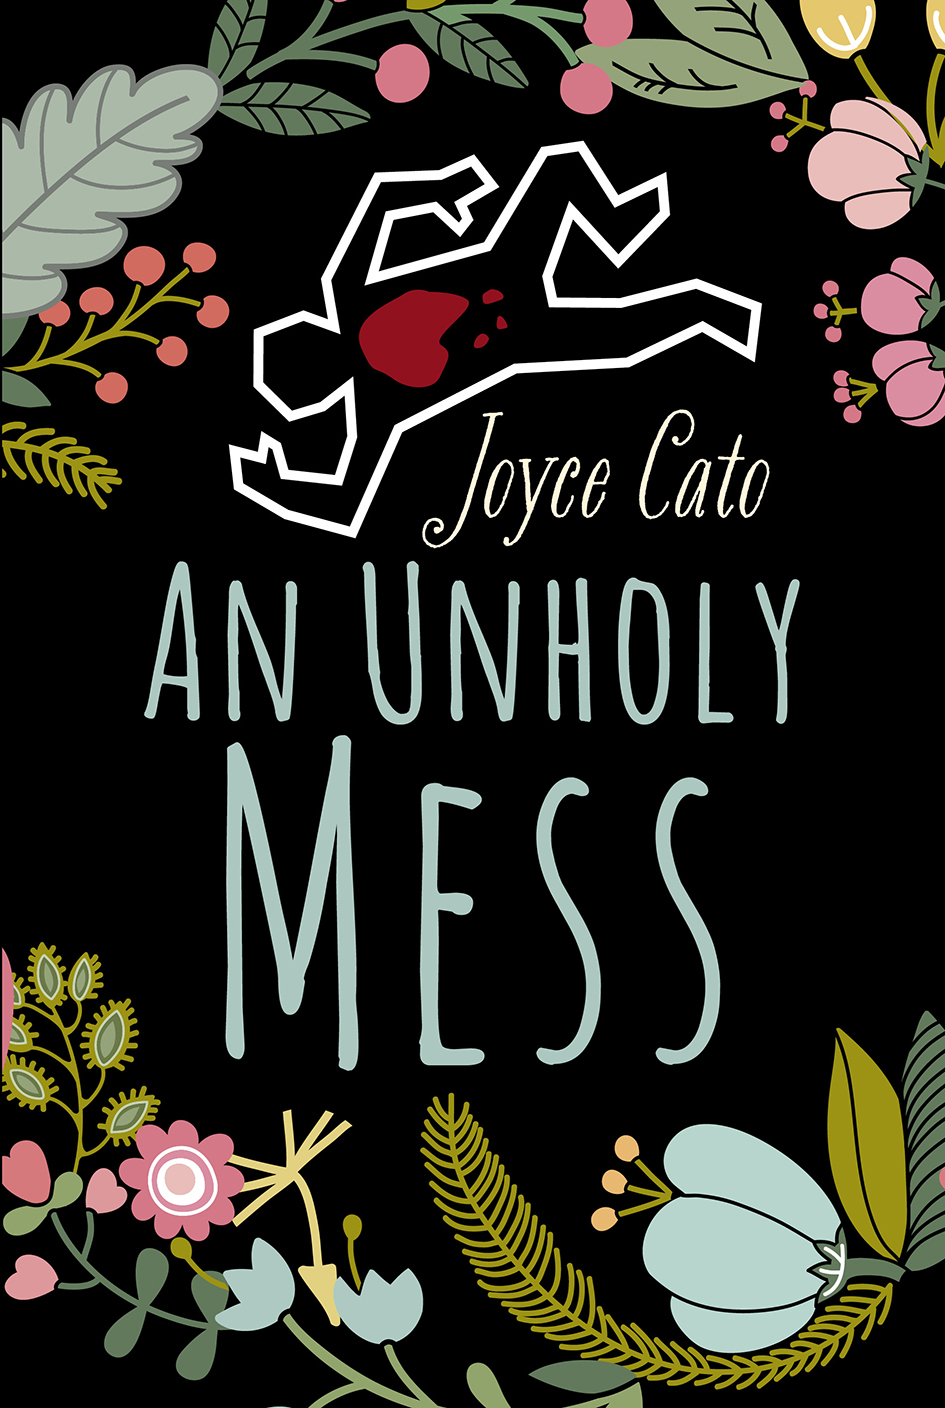 Review: An Unholy Mess by Joyce Cato